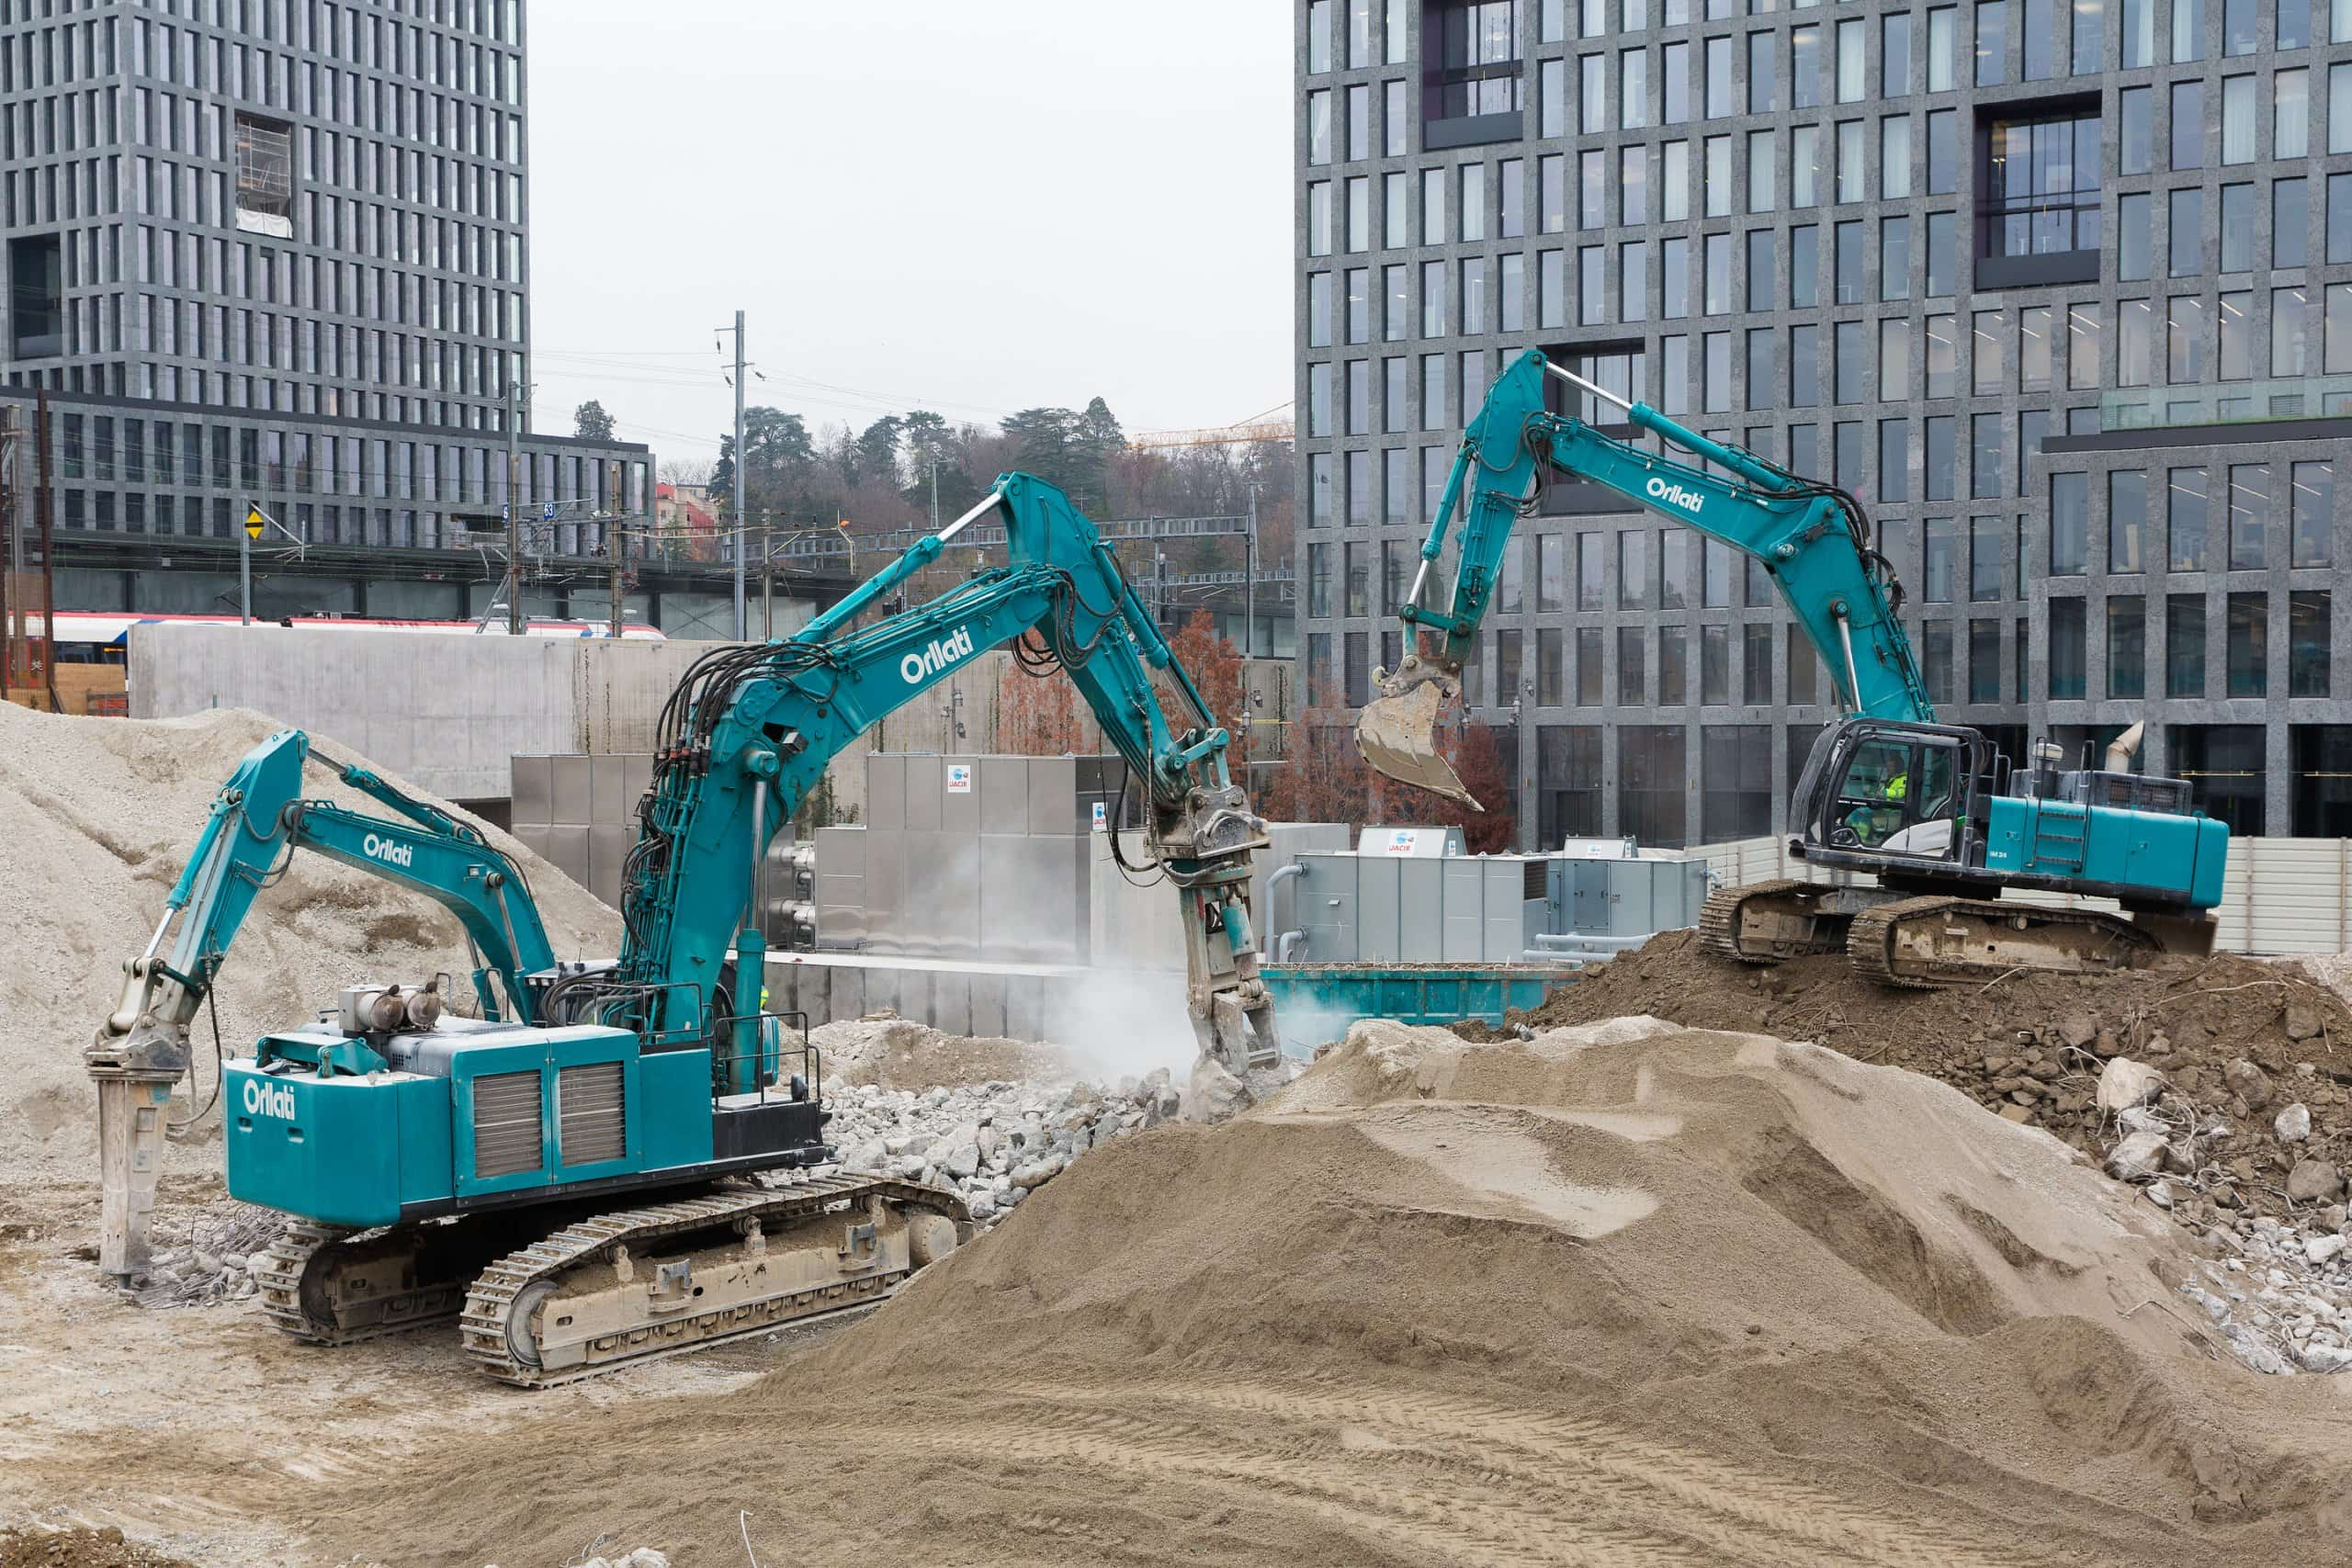 machines de chantier en action